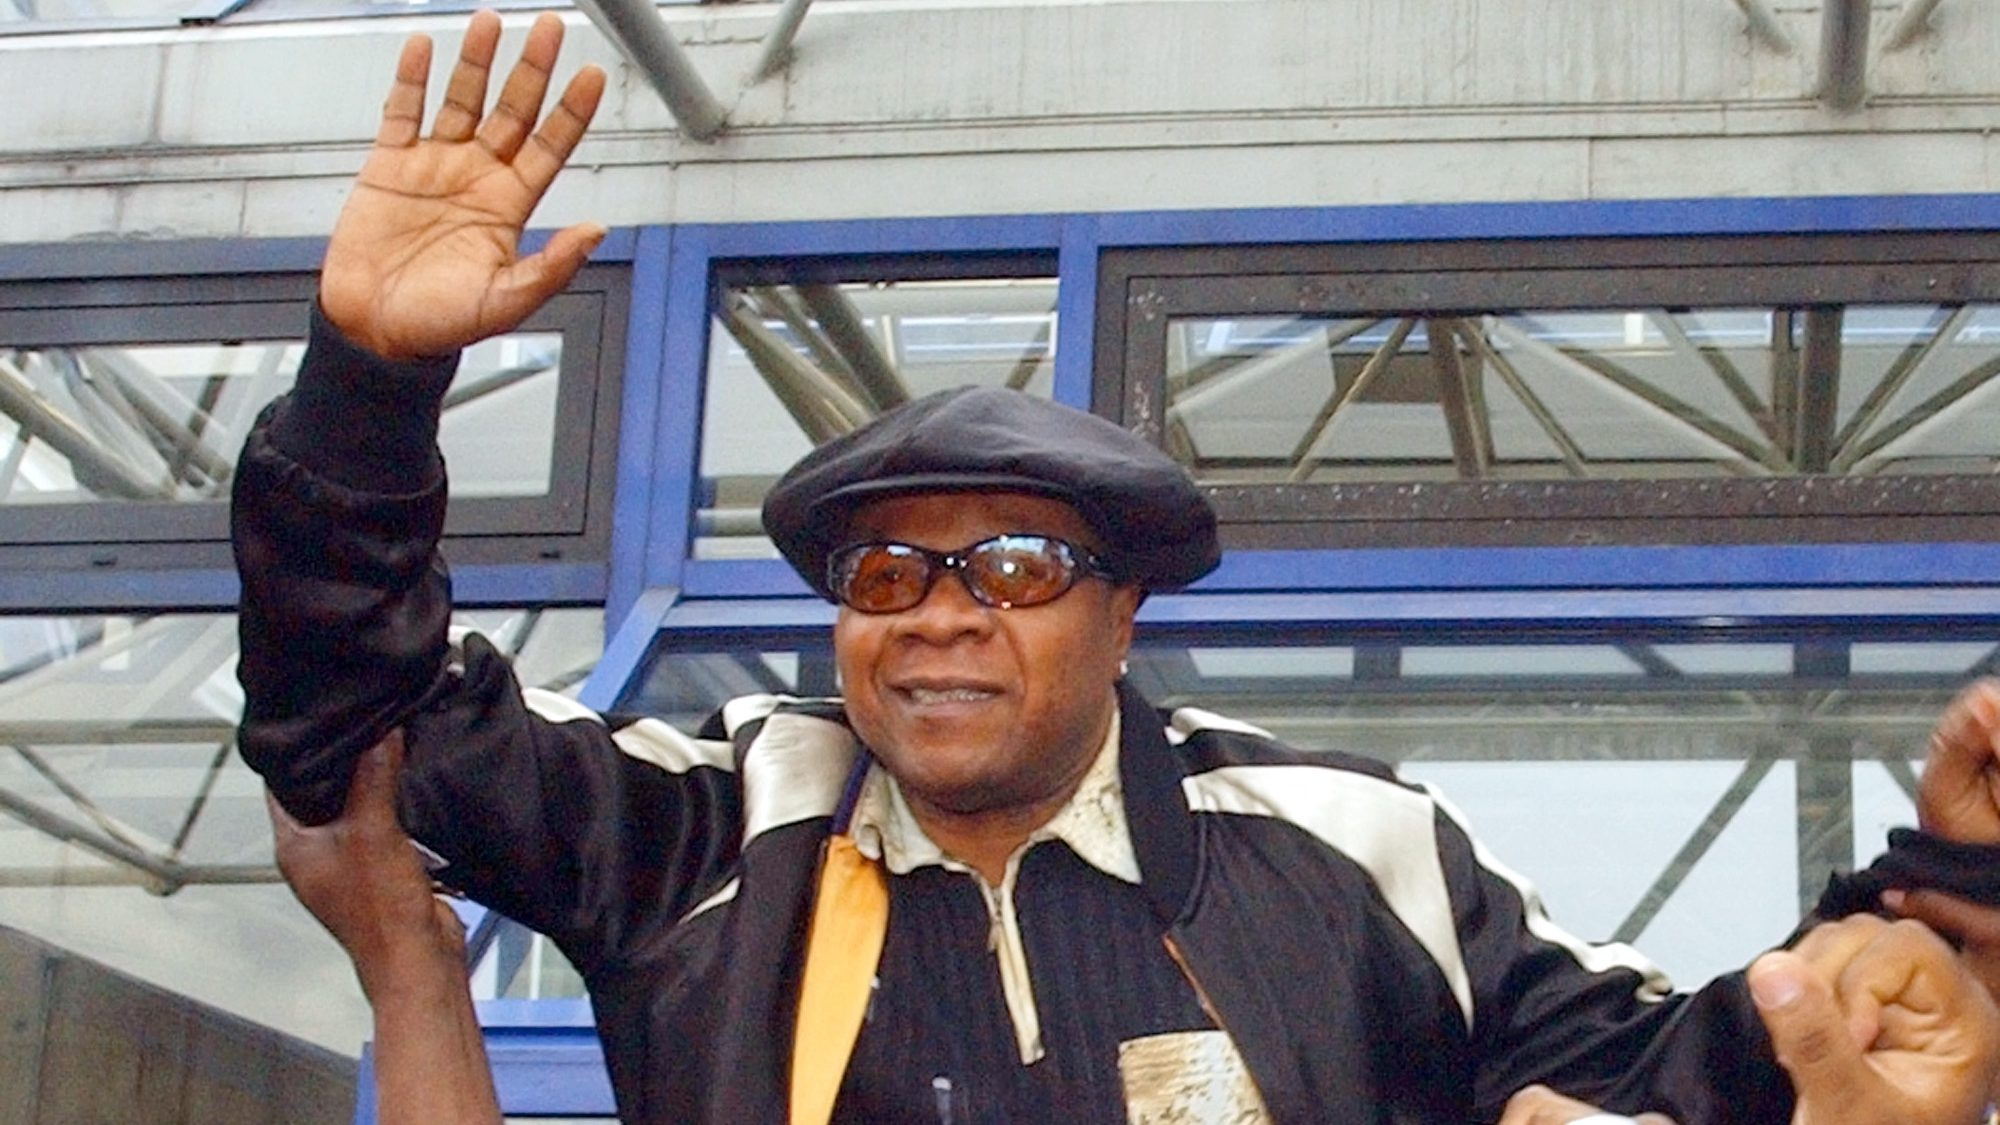 Congolese pop star Papa Wemba was popular with his supporters at home and abroad.